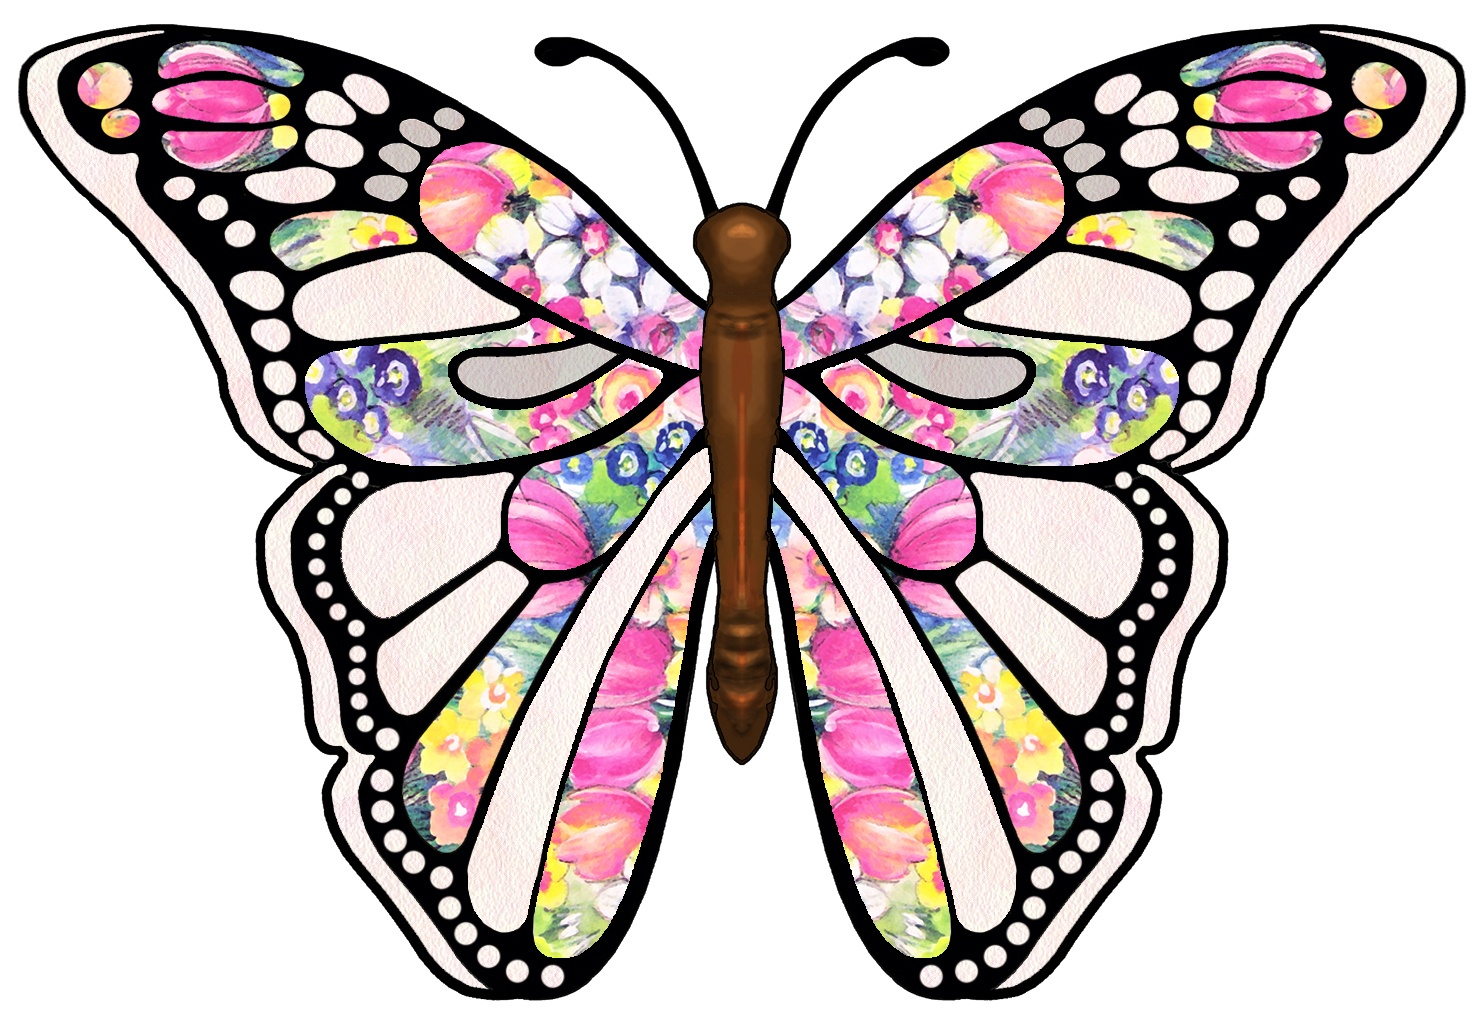 Free Pictures Of Butterflies | Free Download Best Free Pictures Of - Free Printable Images Of Butterflies